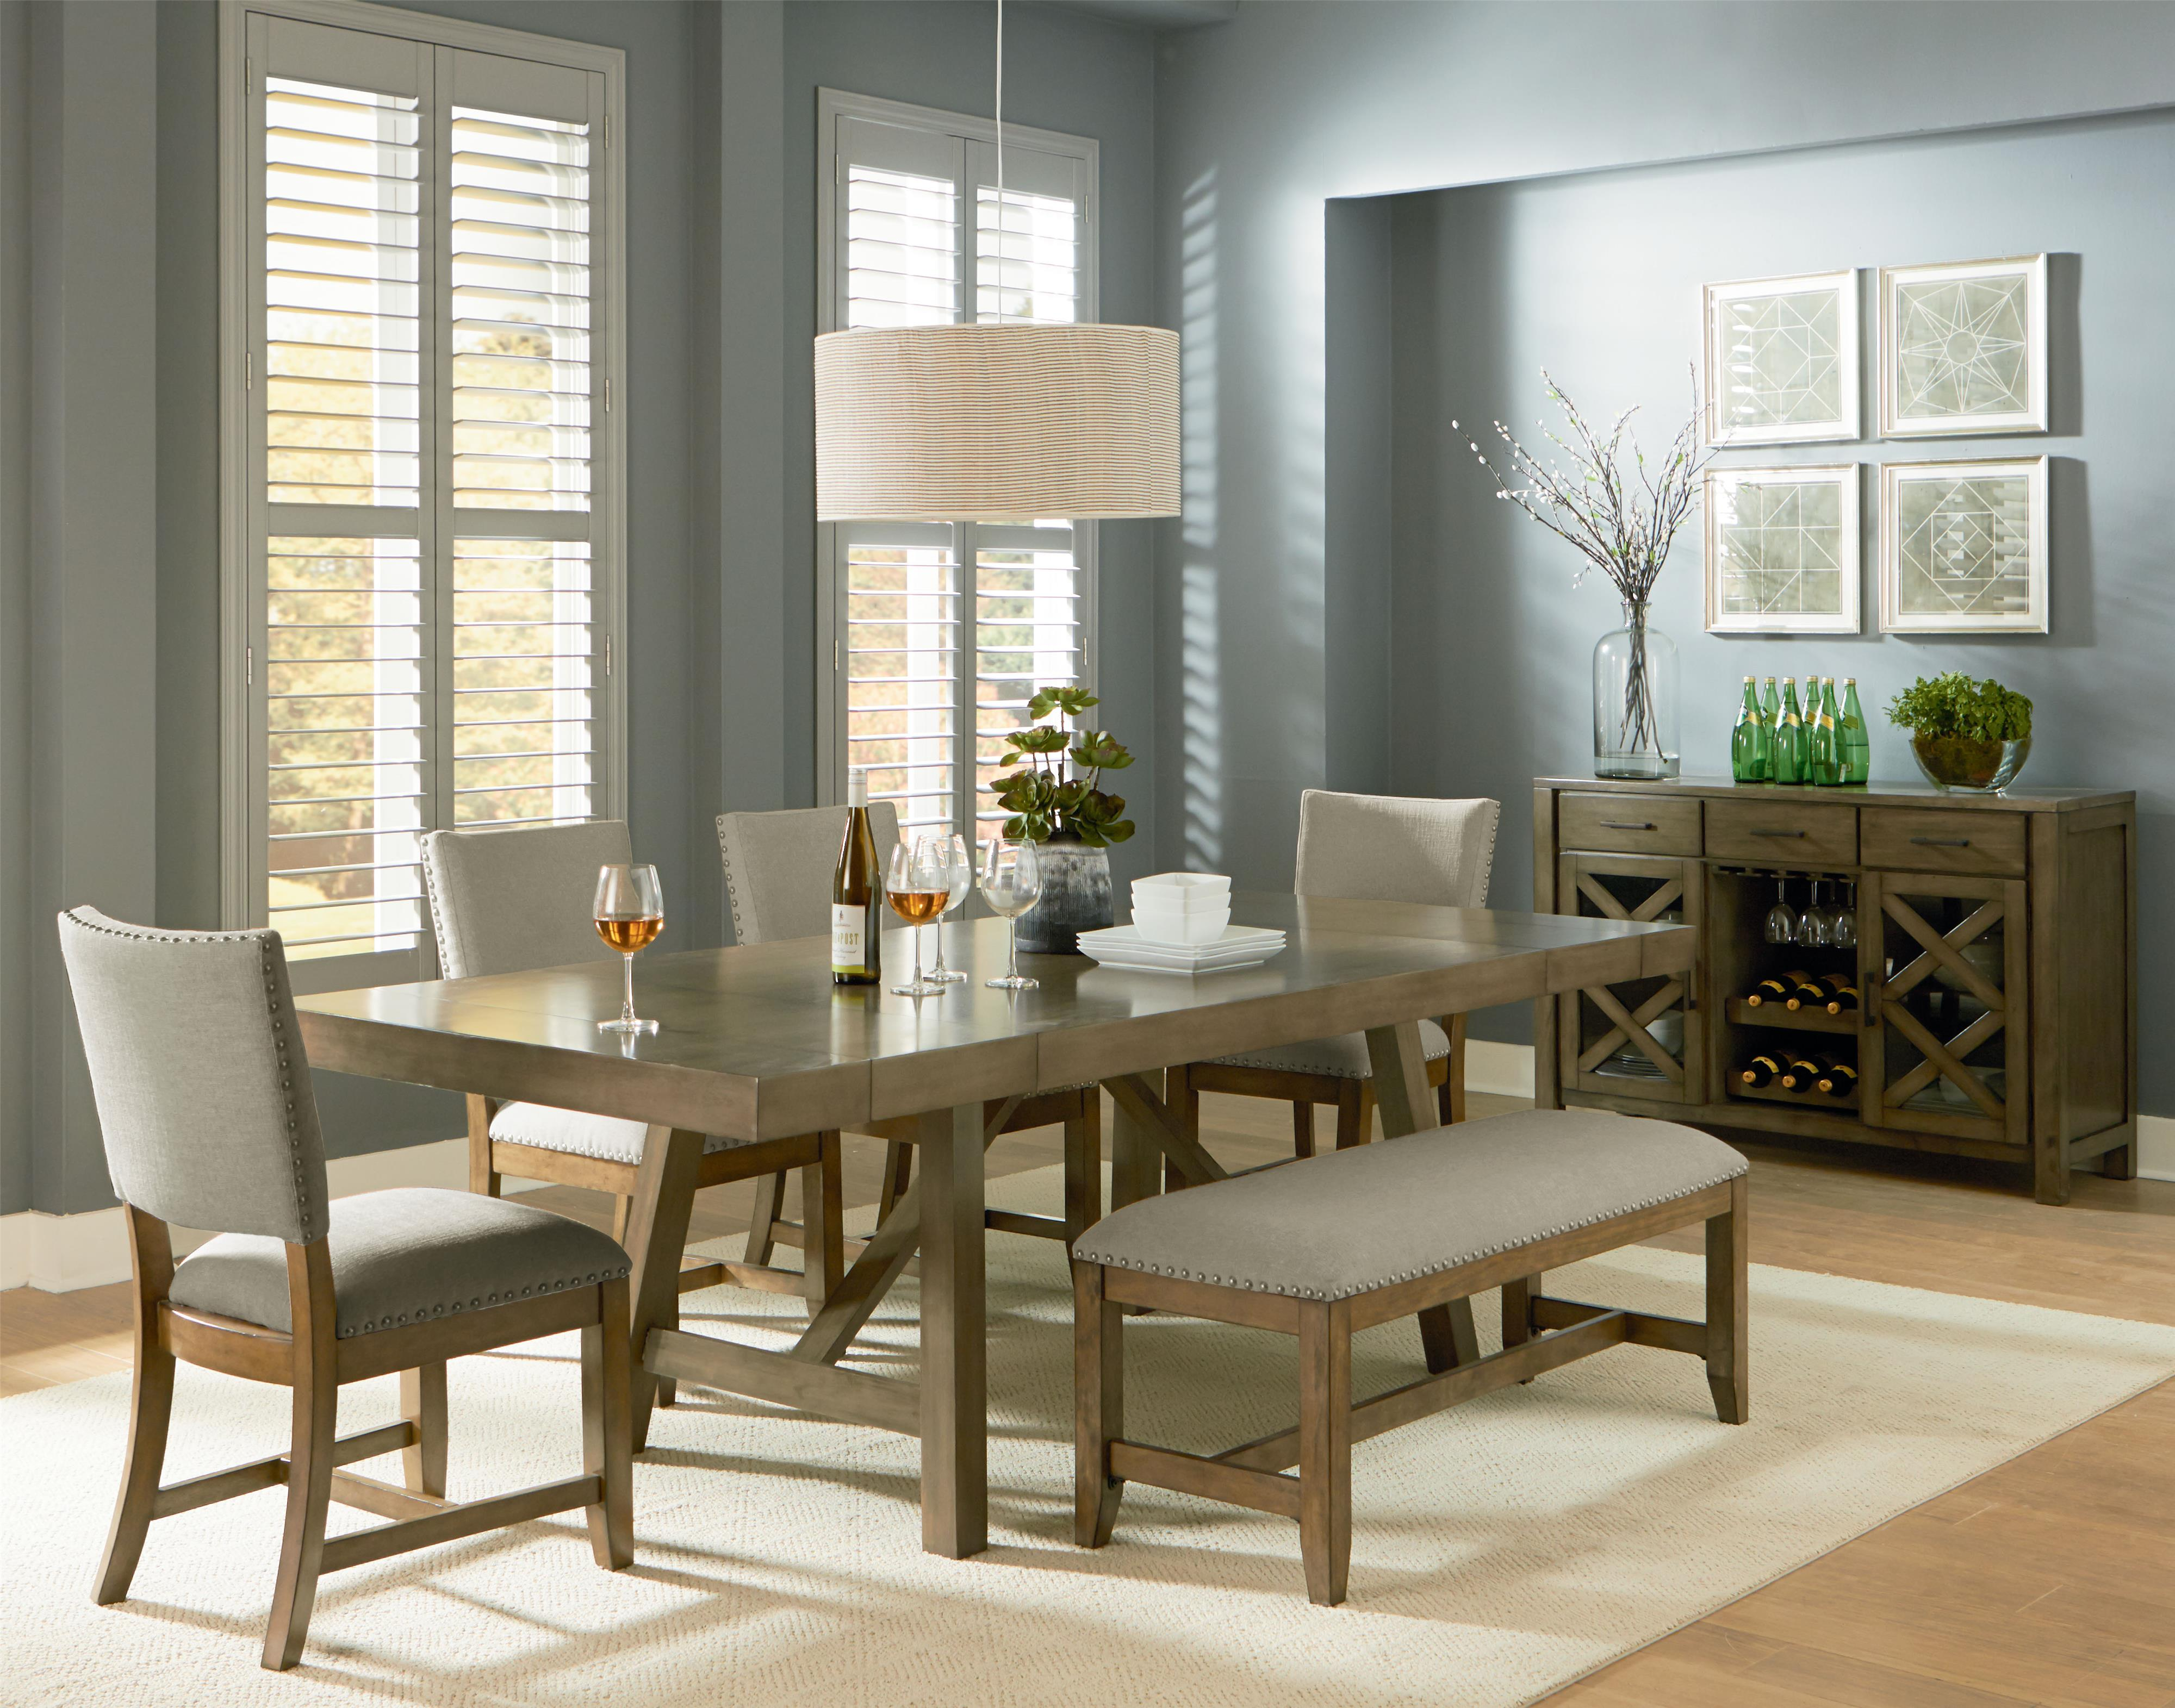 Dining Room delano dining room set Casual Dining Room Group